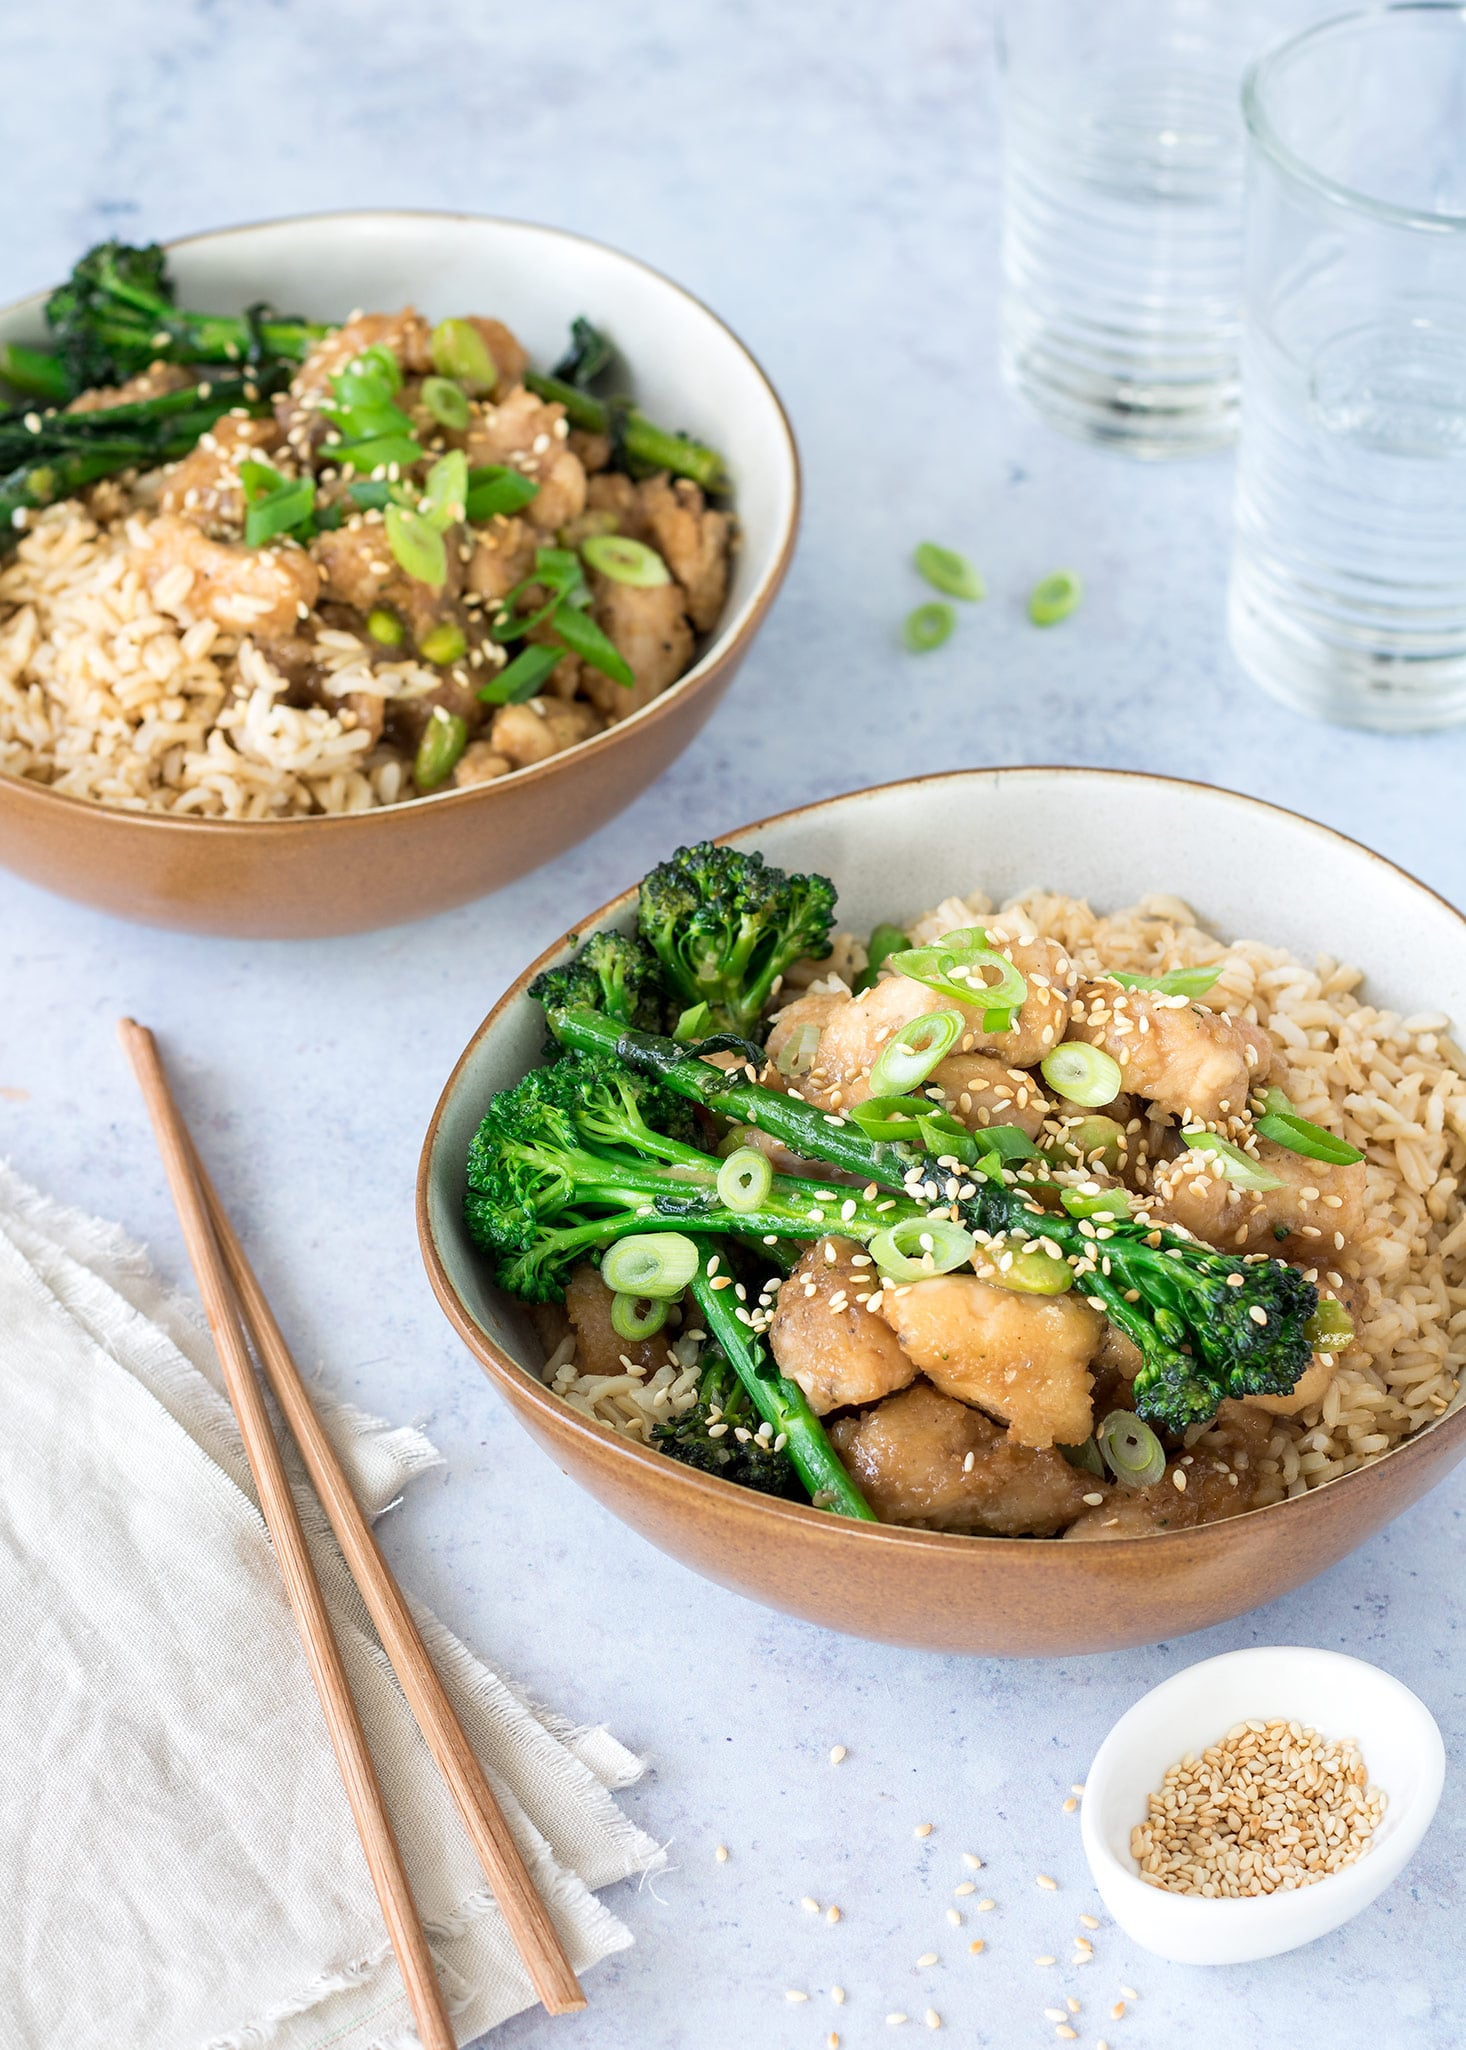 Miso paste adds a delicious savoury flavour to this miso chicken stir fry. A quick and easy meal to whip up on a busy weeknight.